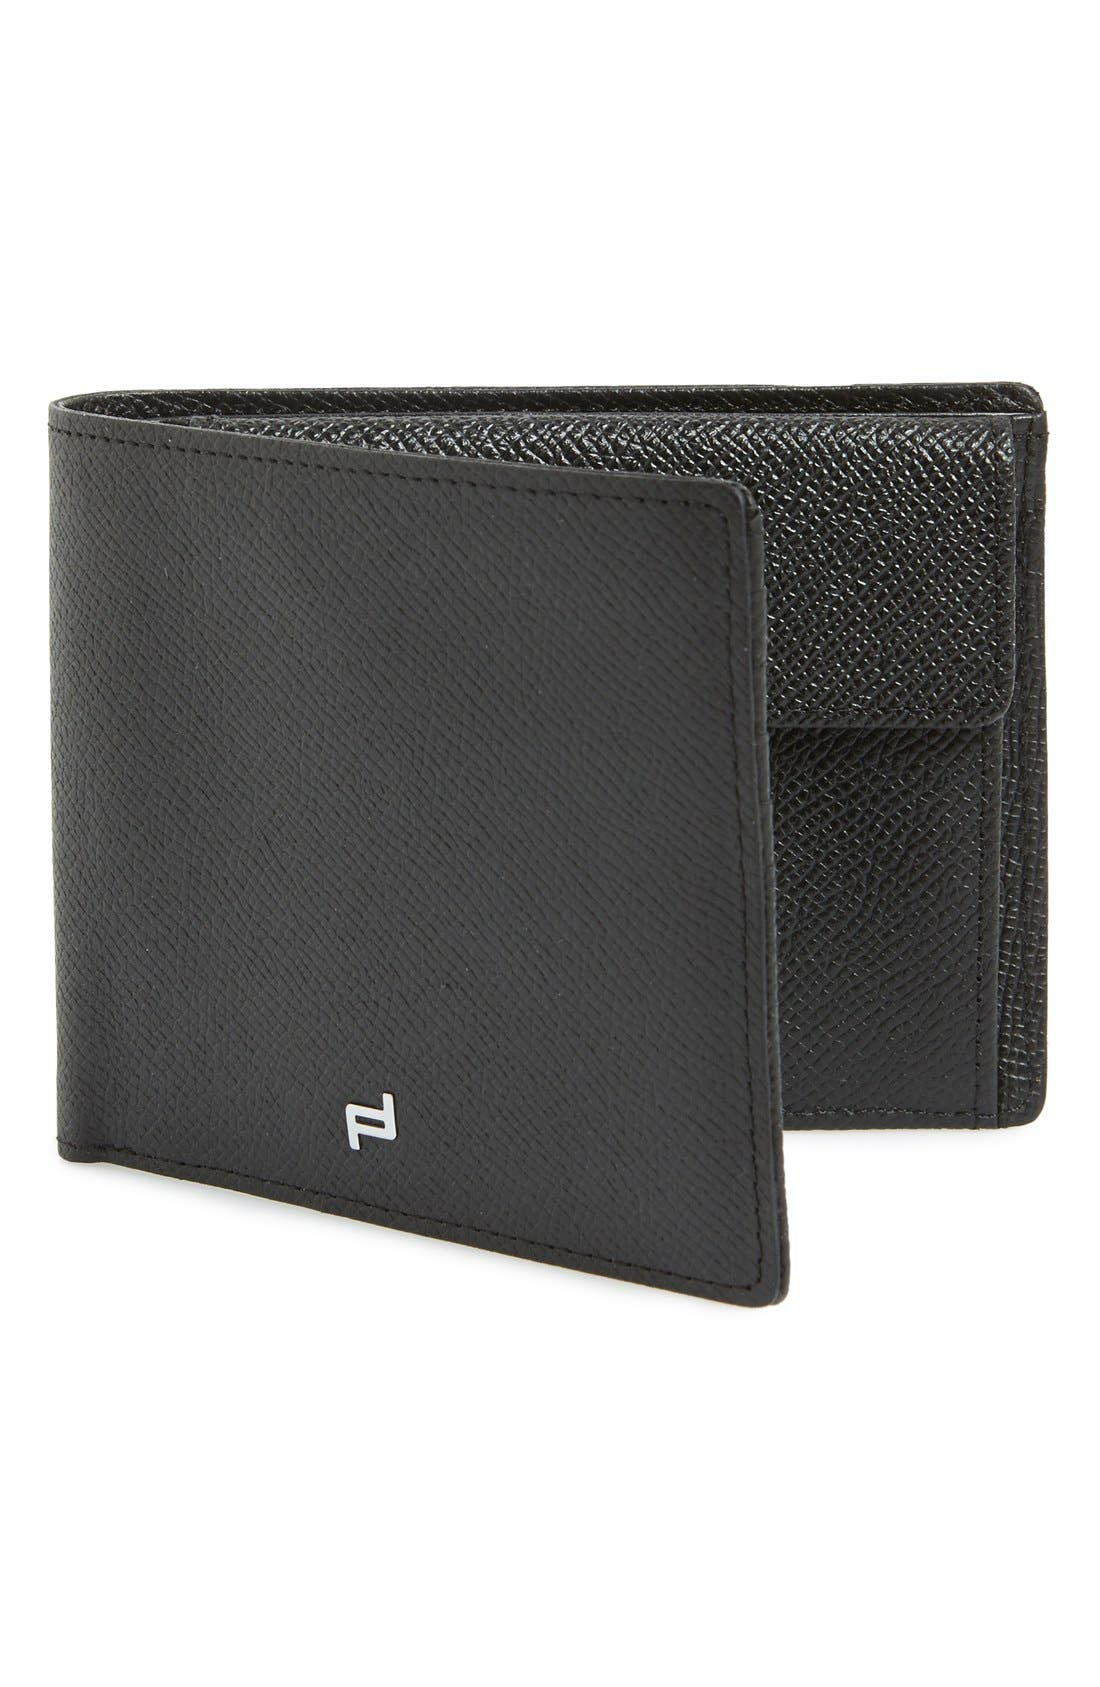 PORSCHE DESIGN French Classic 3.0 Leather Billfold Wallet